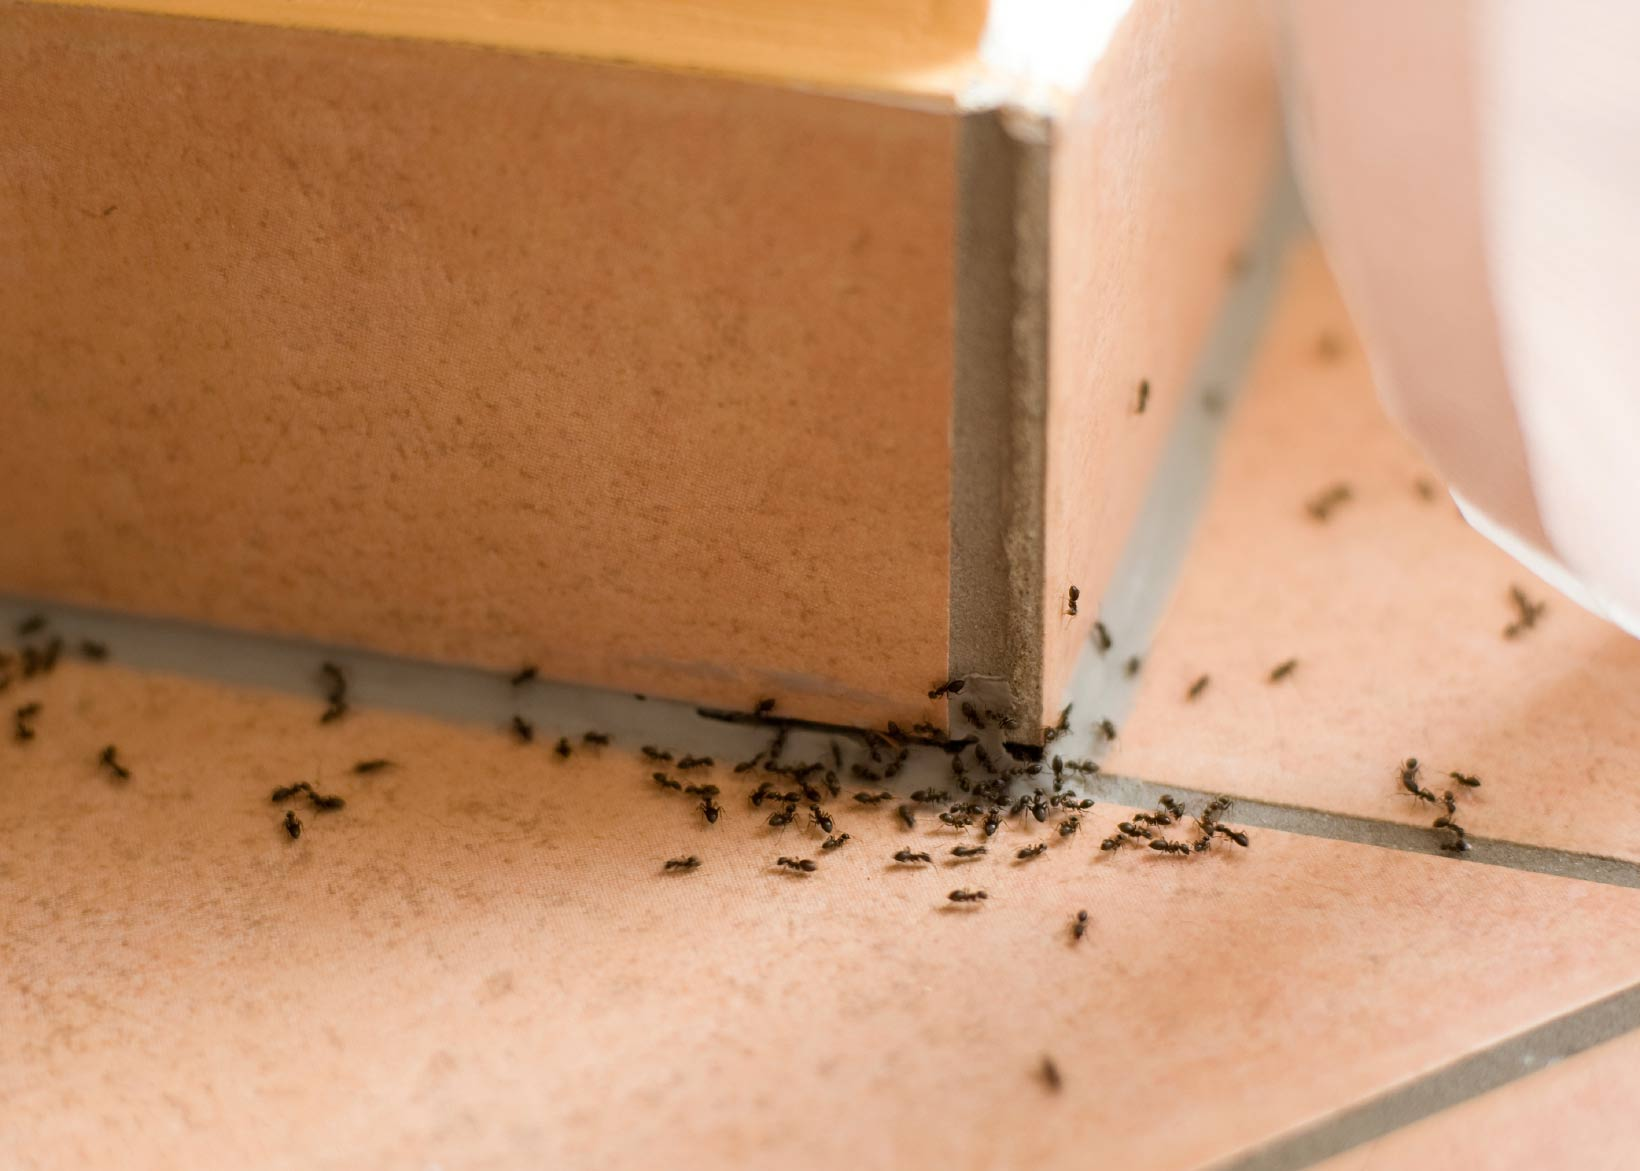 ants coming into the home